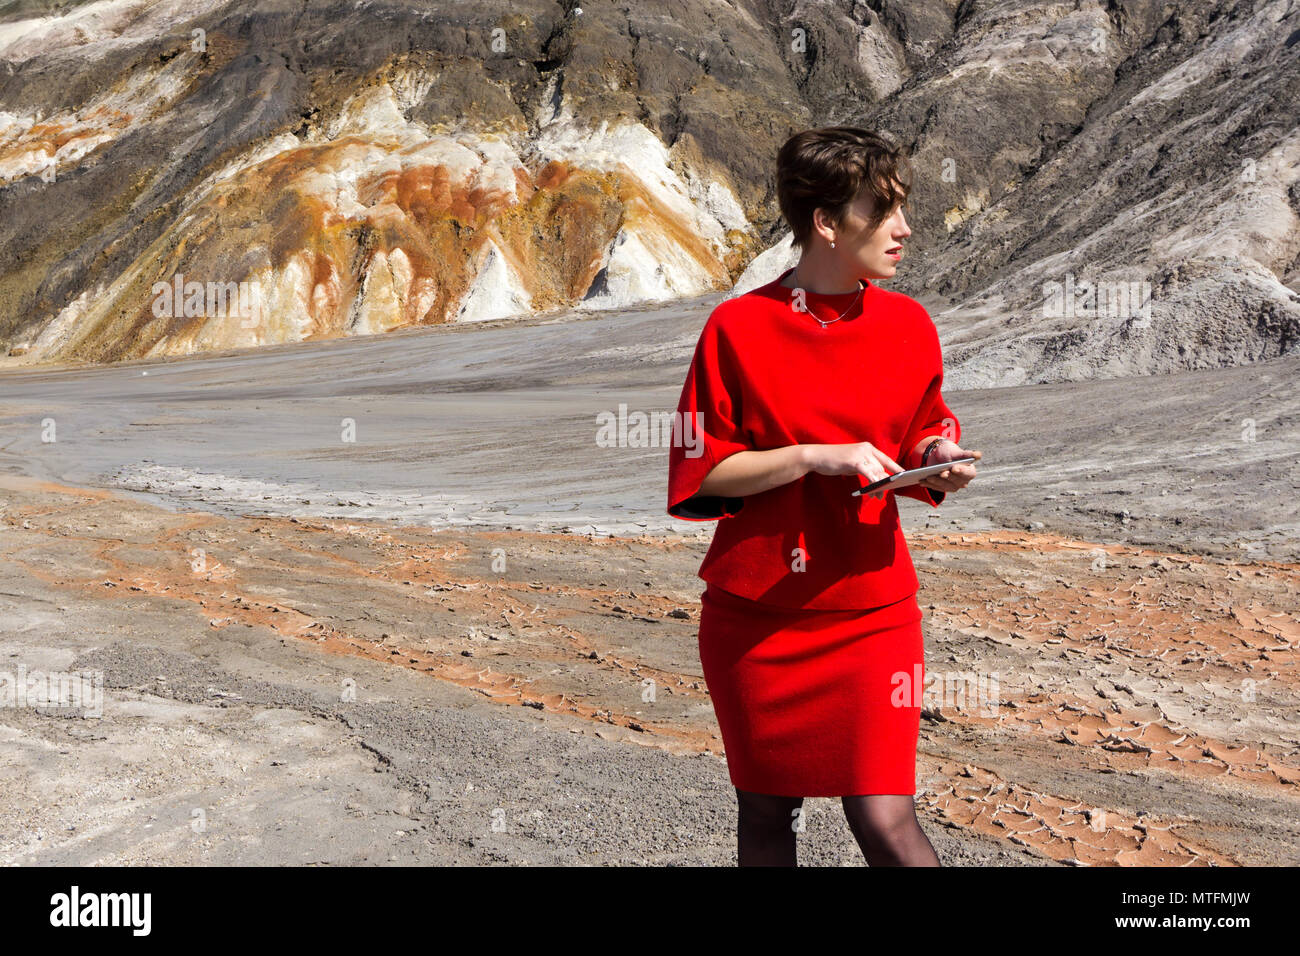 a woman in a business red dress with a tablet in her hands looks around in bewilderment, being in a desert - Stock Image